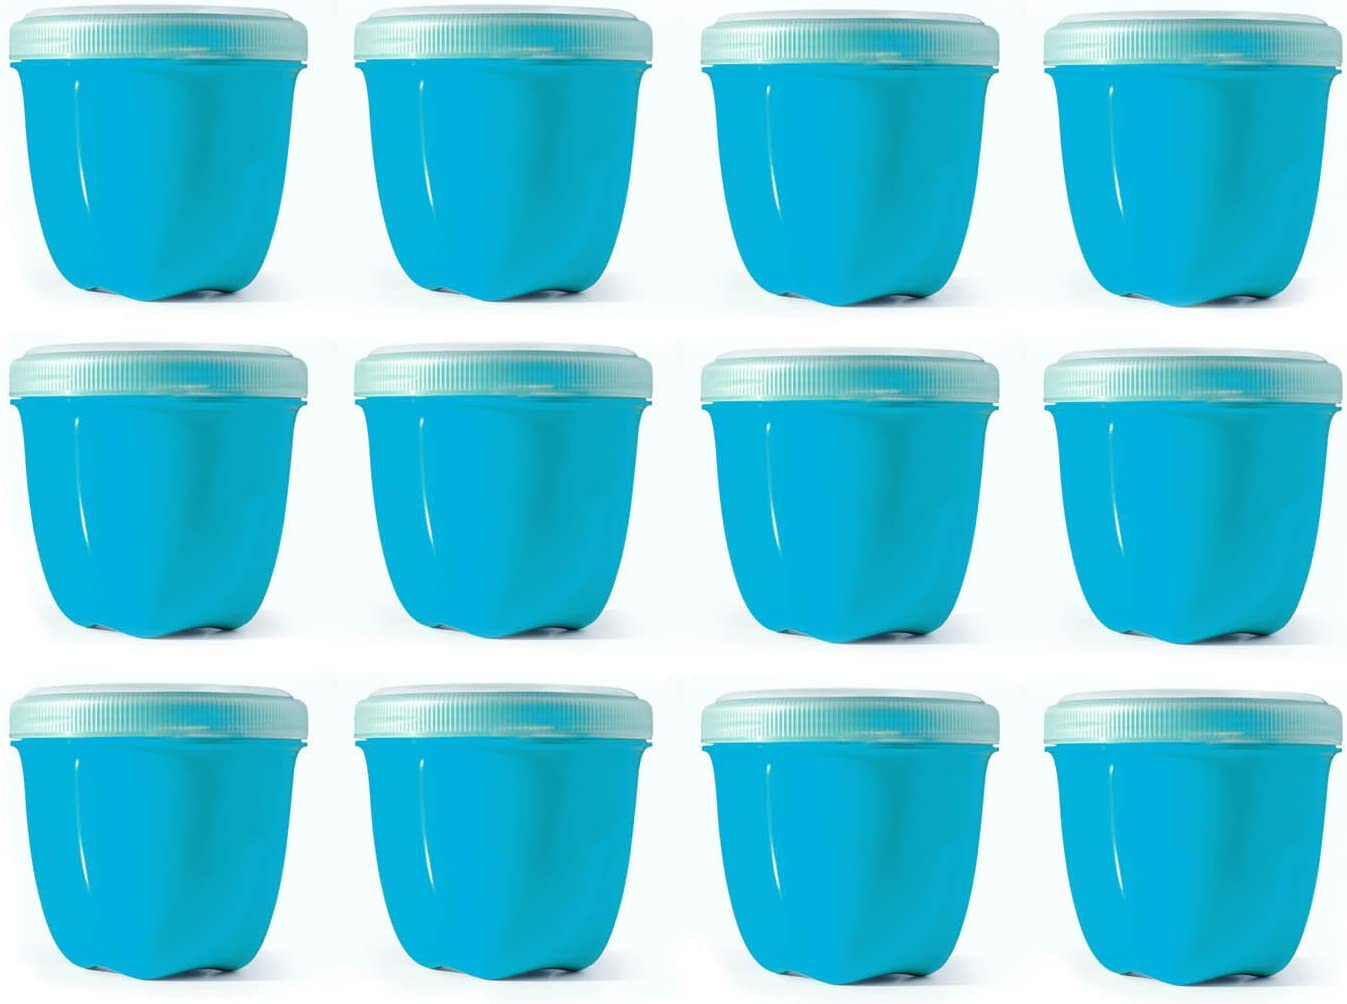 Preserve Reusable BPA Free 8 ounce Mini Food Storage Container with Screw Top Lid, Bulk Set of 12, Aqua Blue